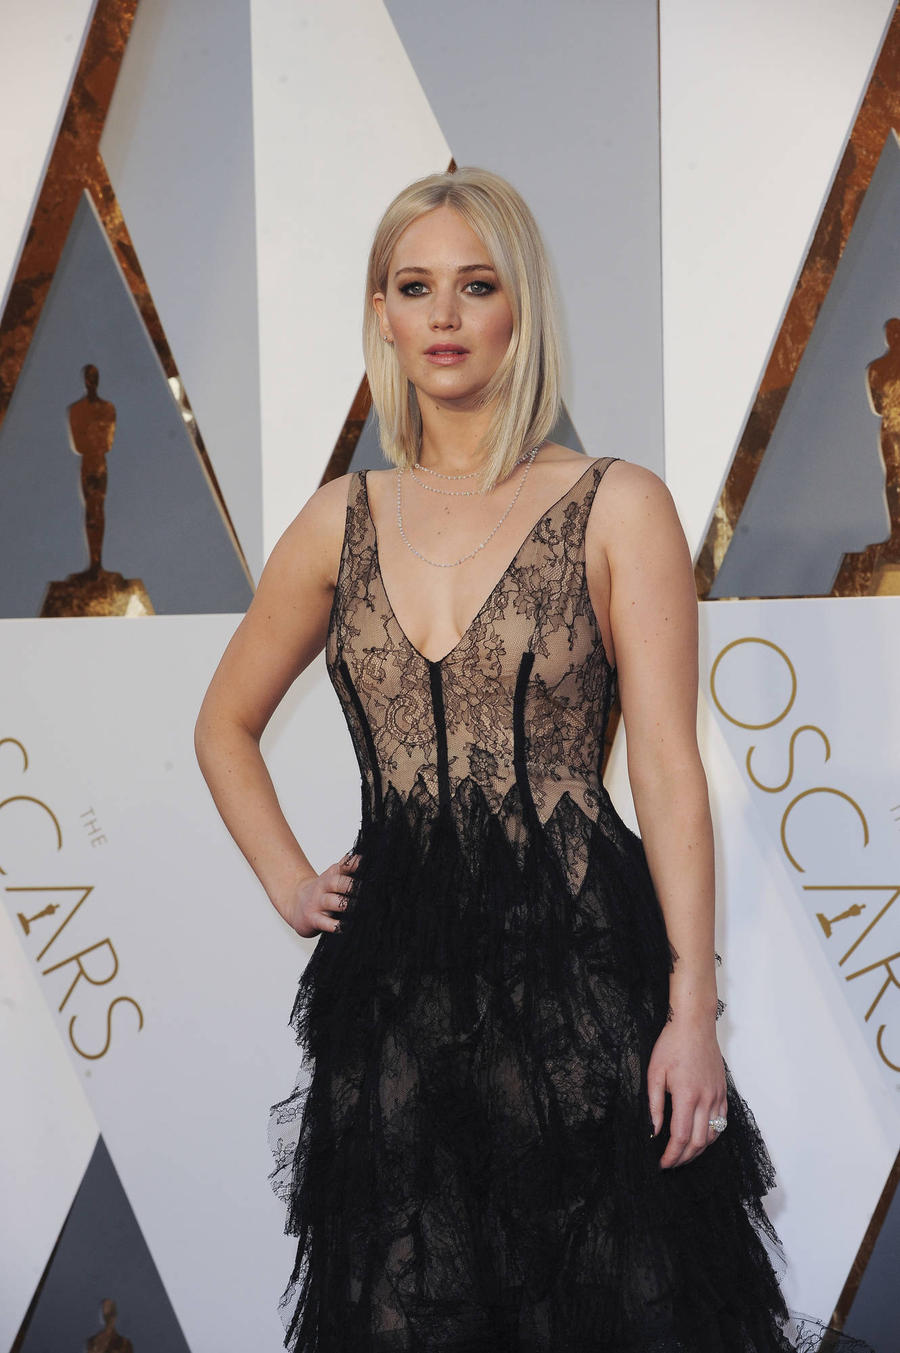 Jennifer Lawrence Reveals Low Tolerance For Partying